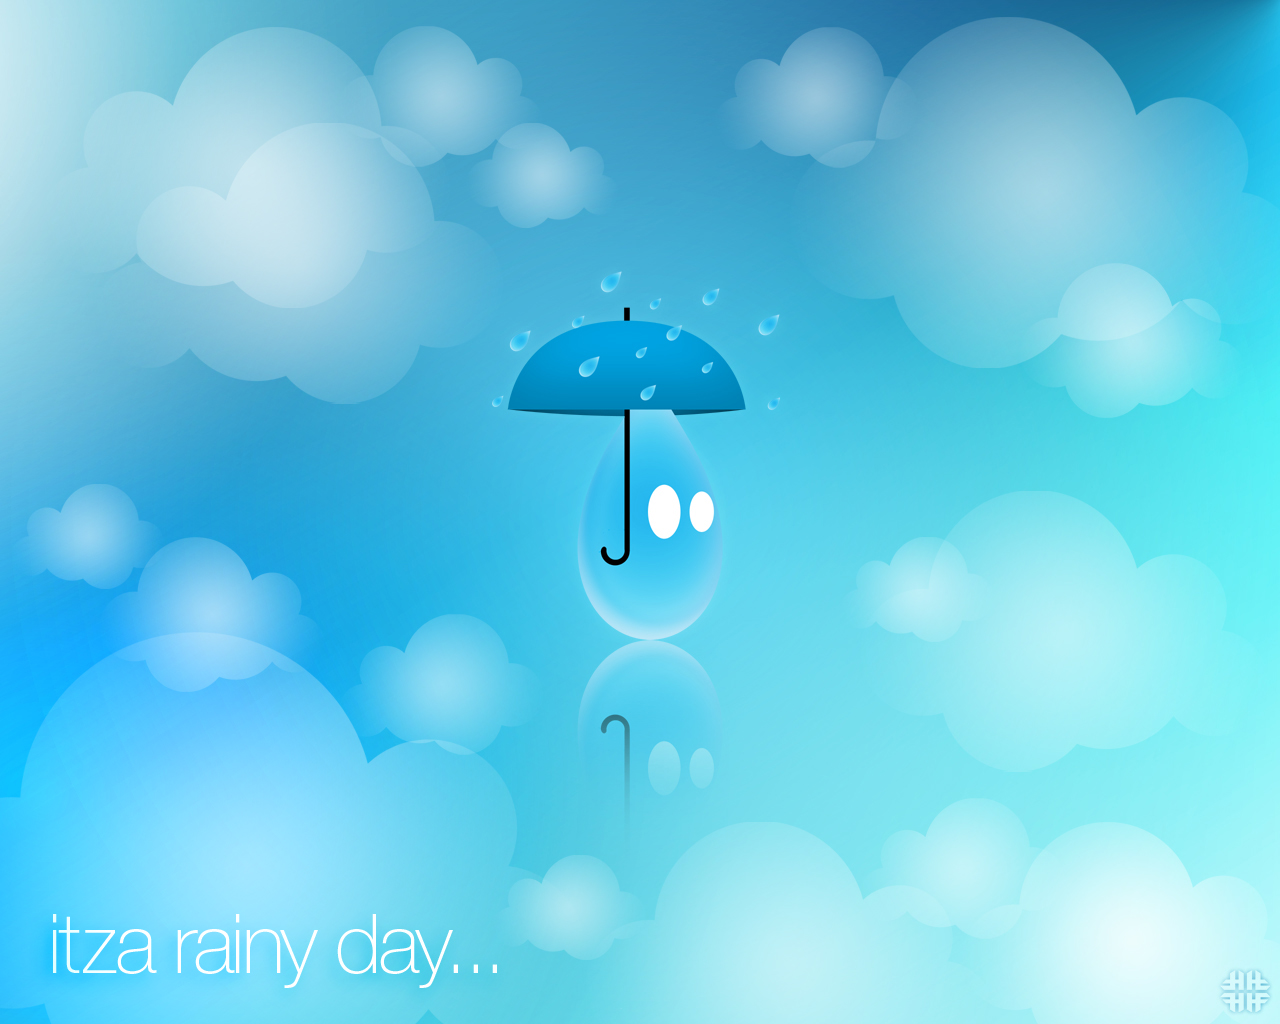 Top Rainy Day Wallpapers Free Wallpapers